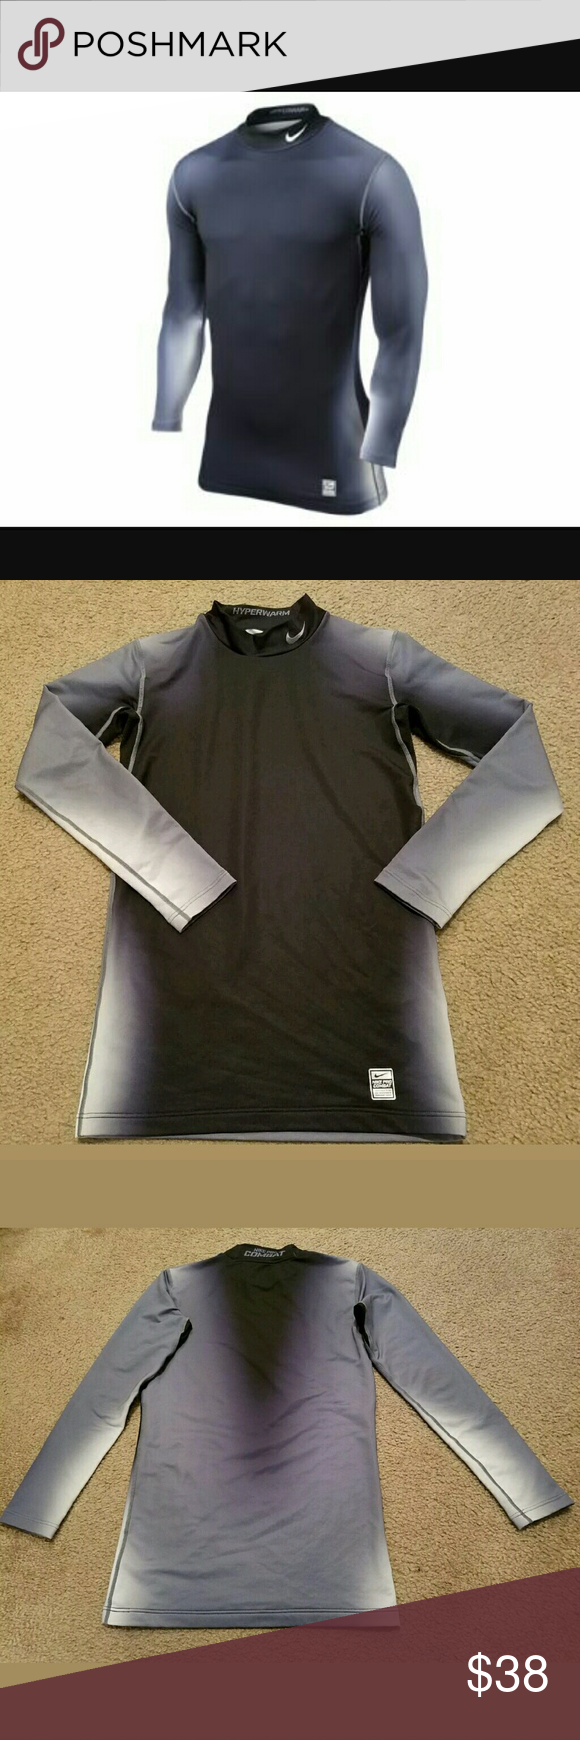 NWT Nike Men/'s Pro Combat Hyperwarm Dri-FIT Red Fitted Mock Neck Shirt